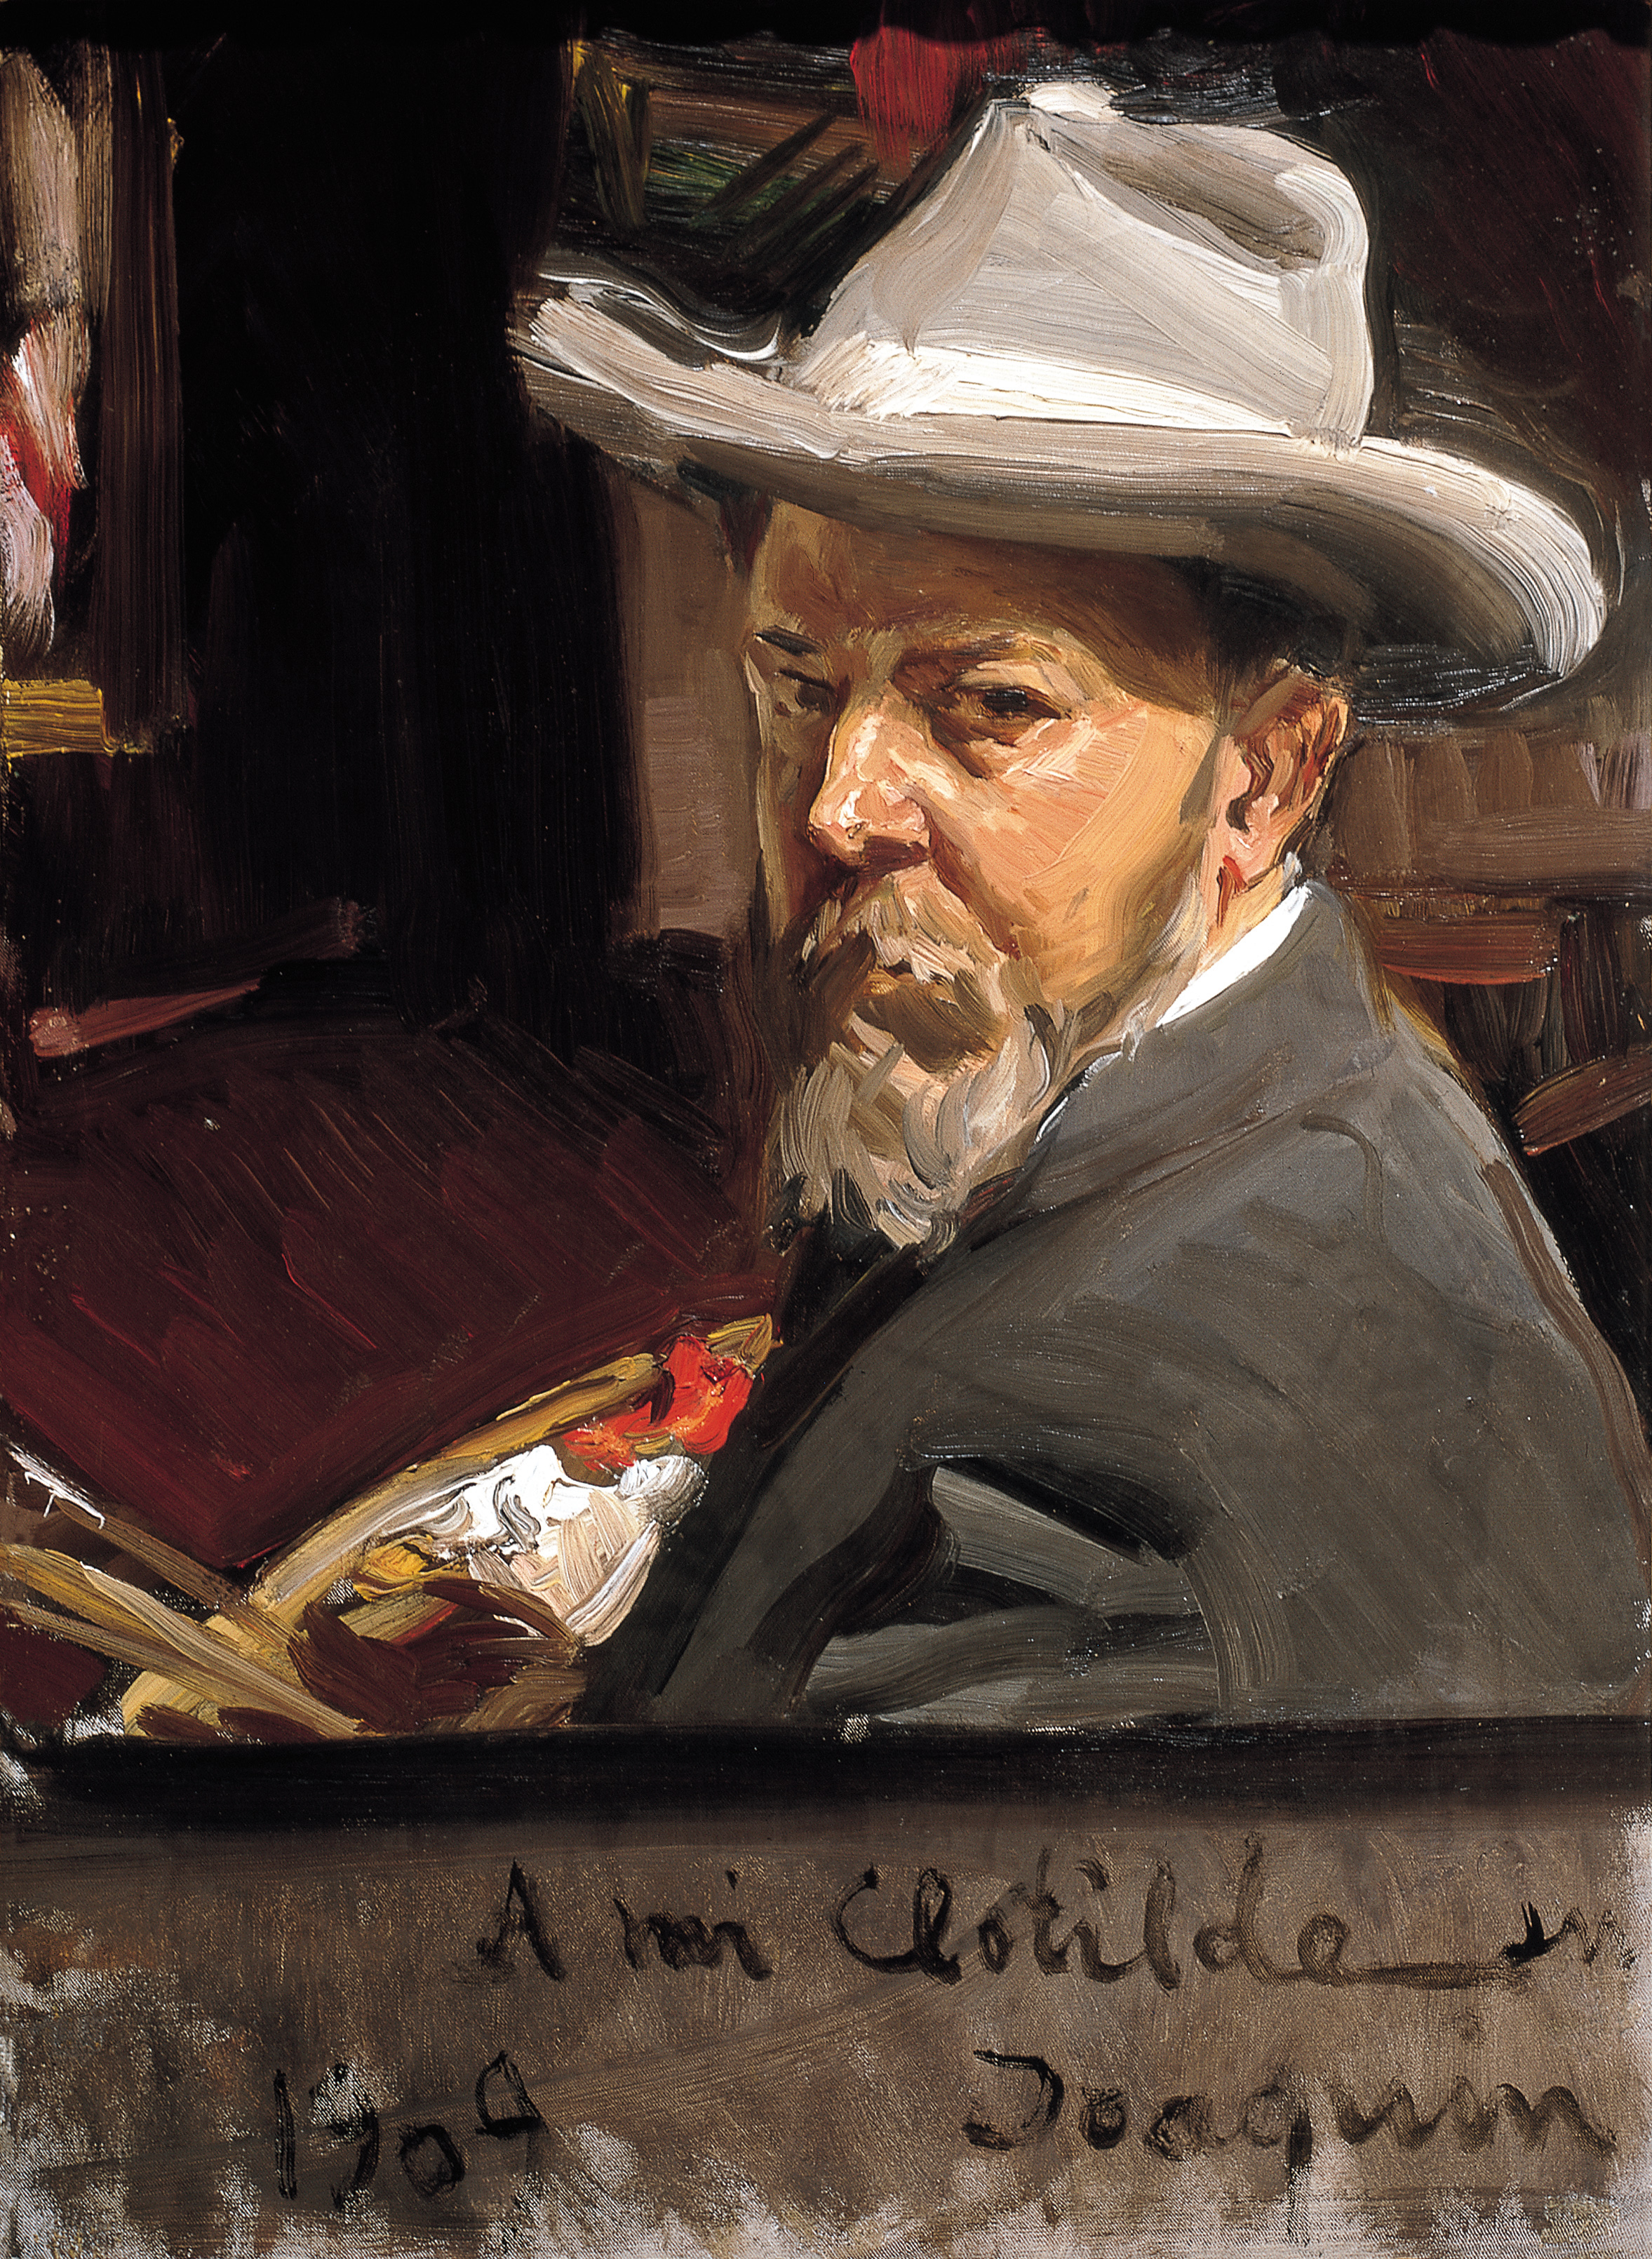 Self-Portrait - Joaquín Sorolla y Bastida (Spanish, 1863-1923), Self-Portrait, 1909, oil on canvas.